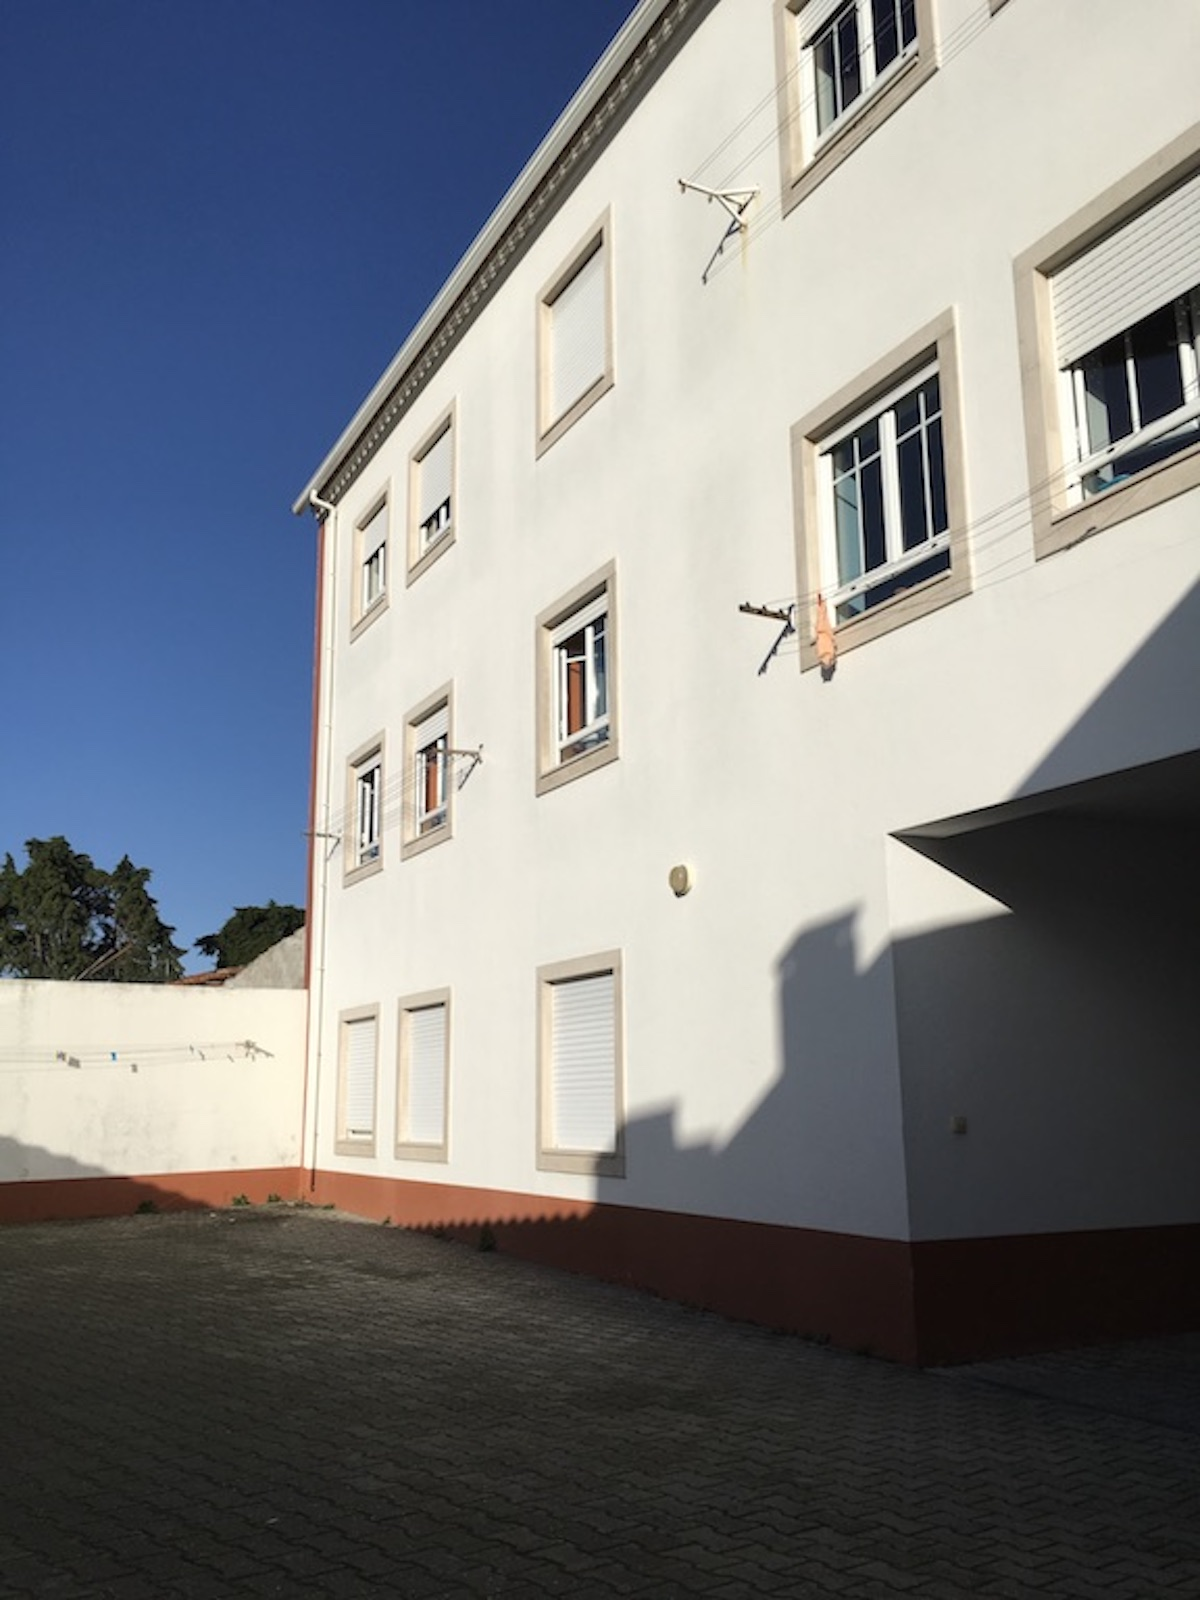 3 bedroom Apartment near Óbidos